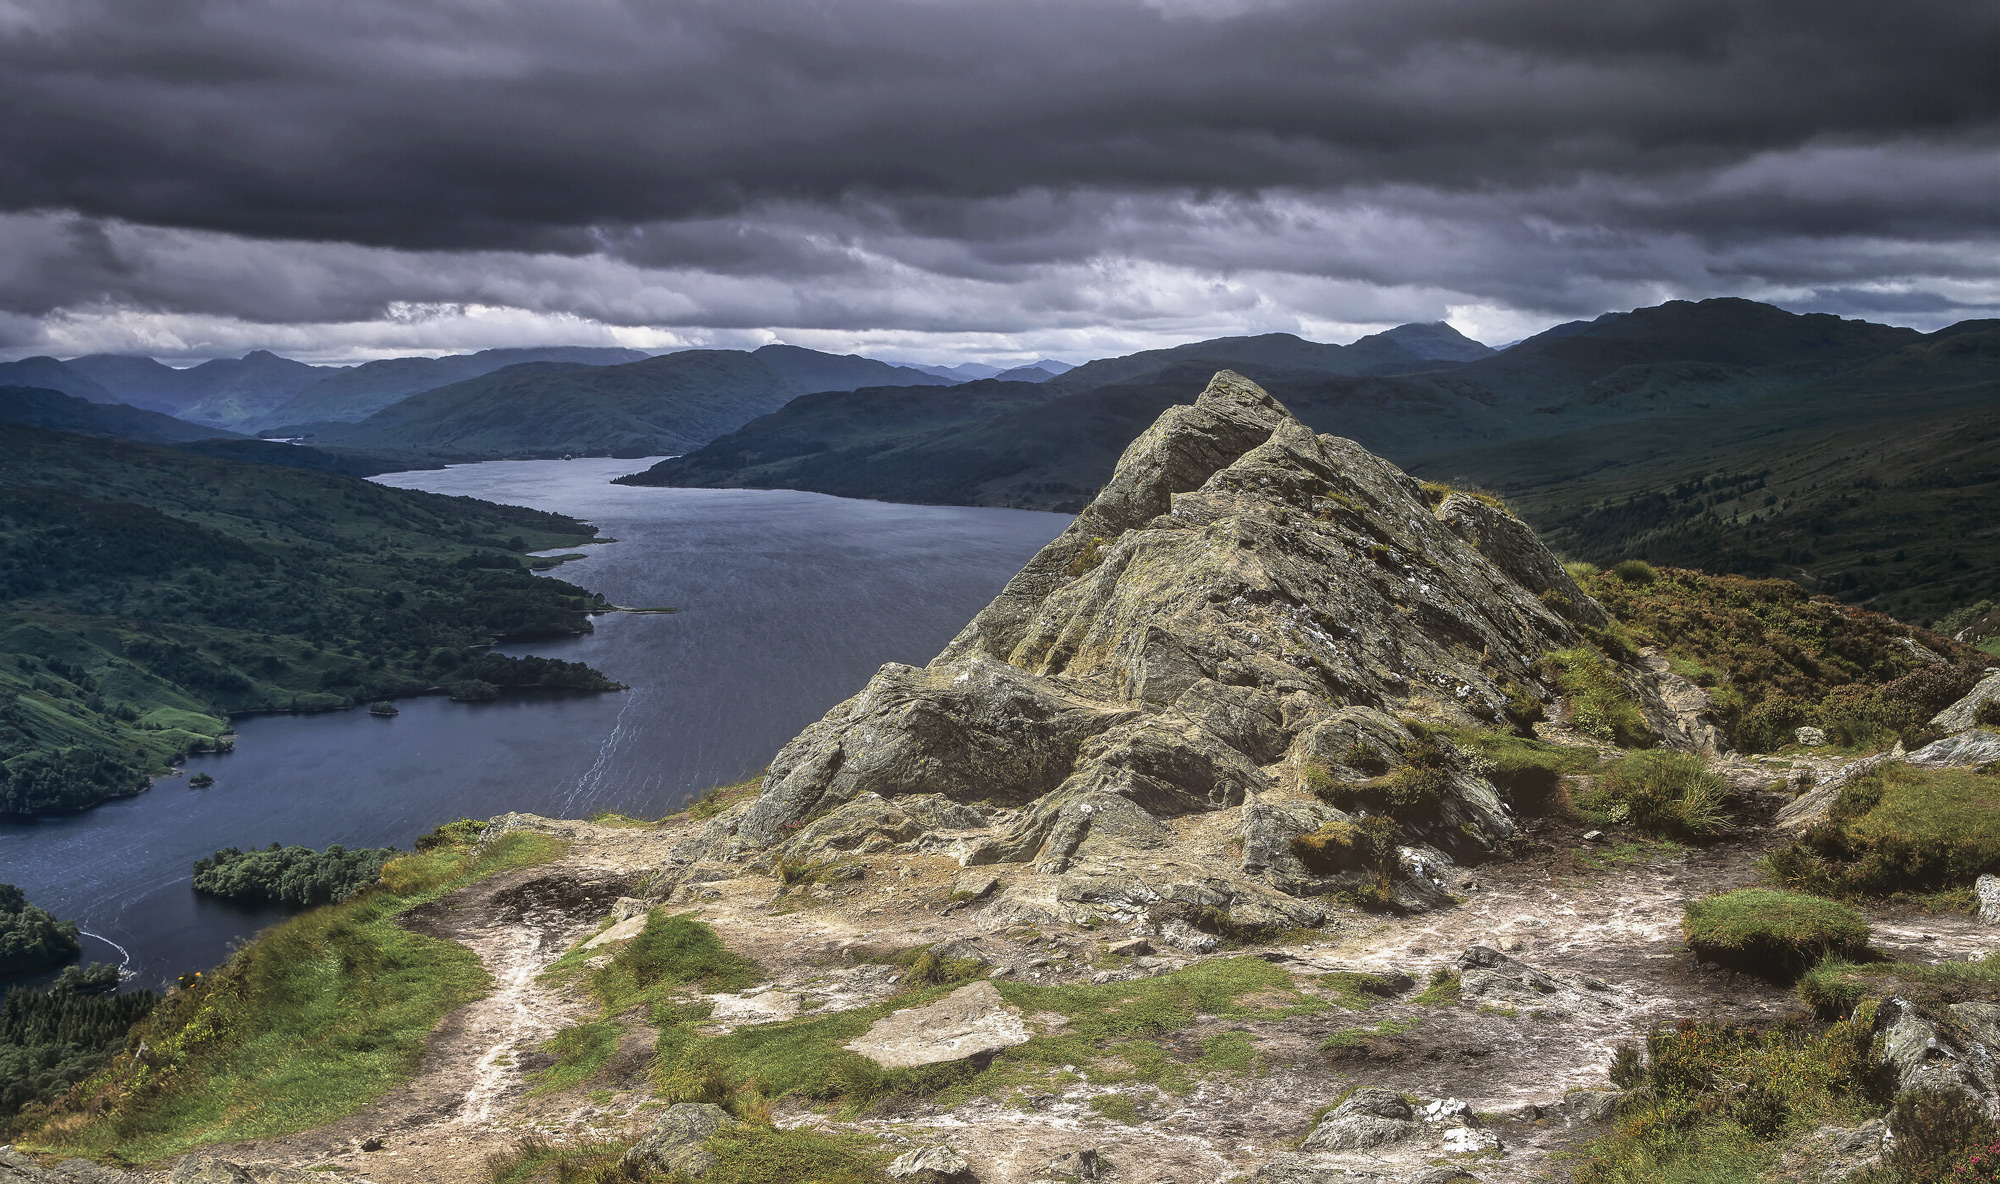 A wonderful short climb to the summit of Ben A'an provides a splendid view over Loch Katrine in the Trossachs. Once at...